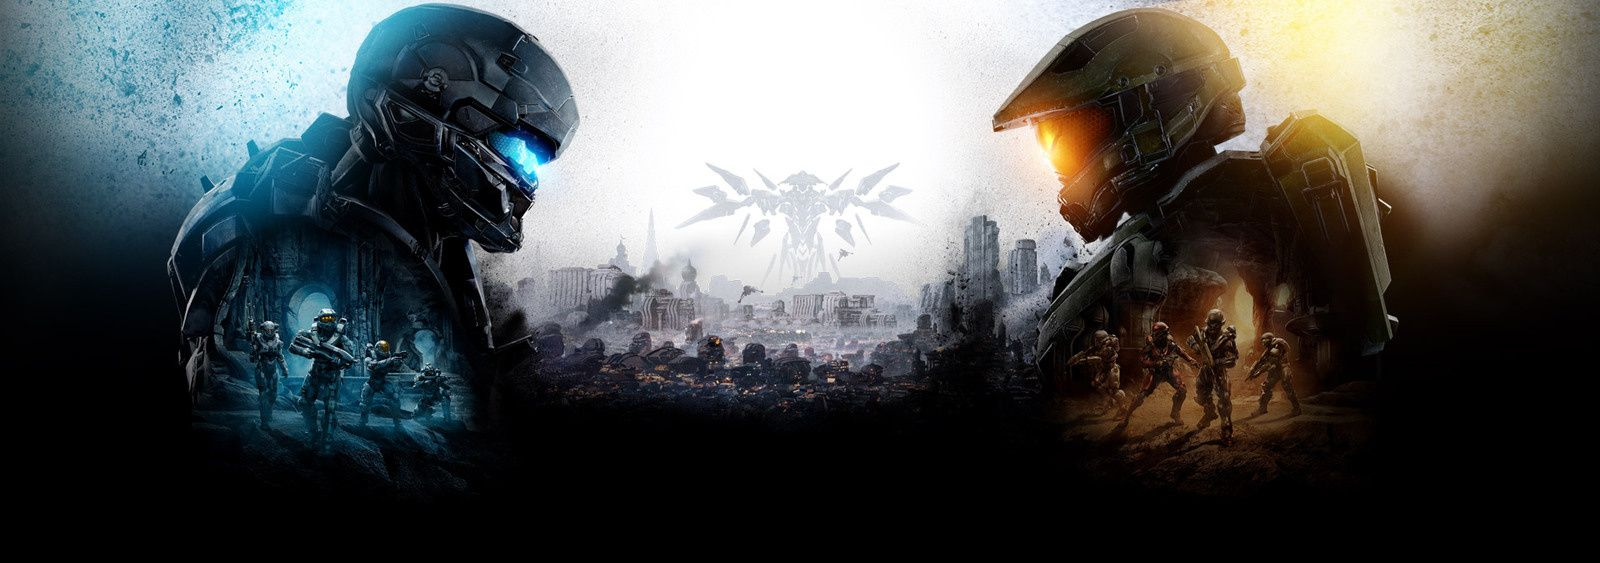 [E3 2015] Halo 5 et son gameplay